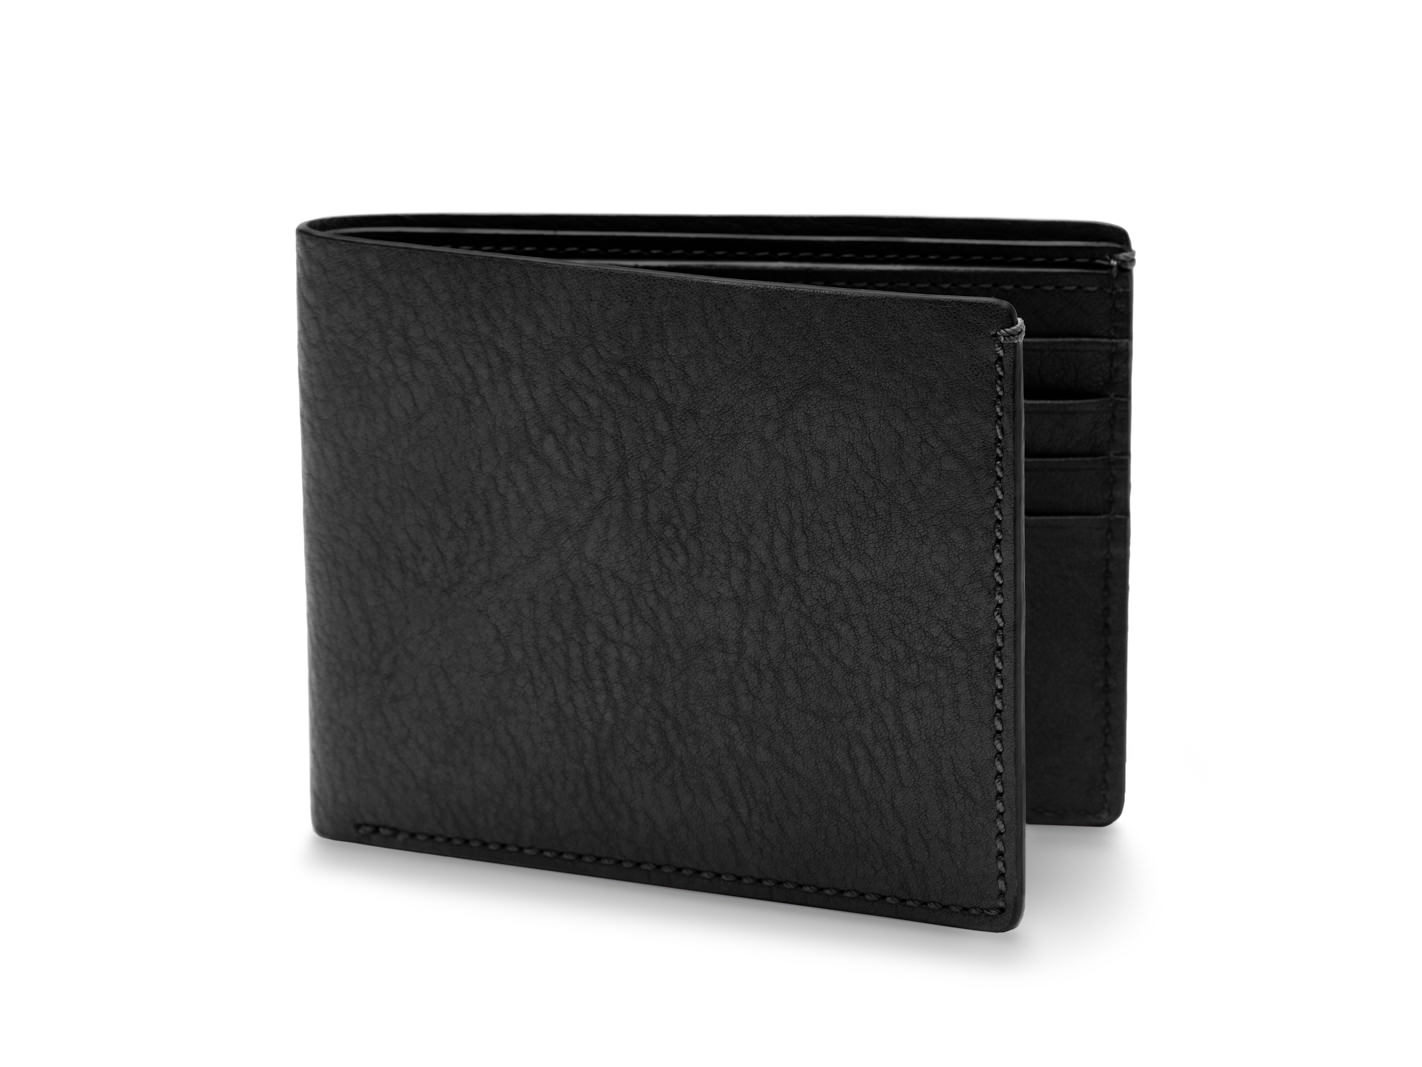 8 Pocket Deluxe Executive Wallet-159 Black - 159 Black